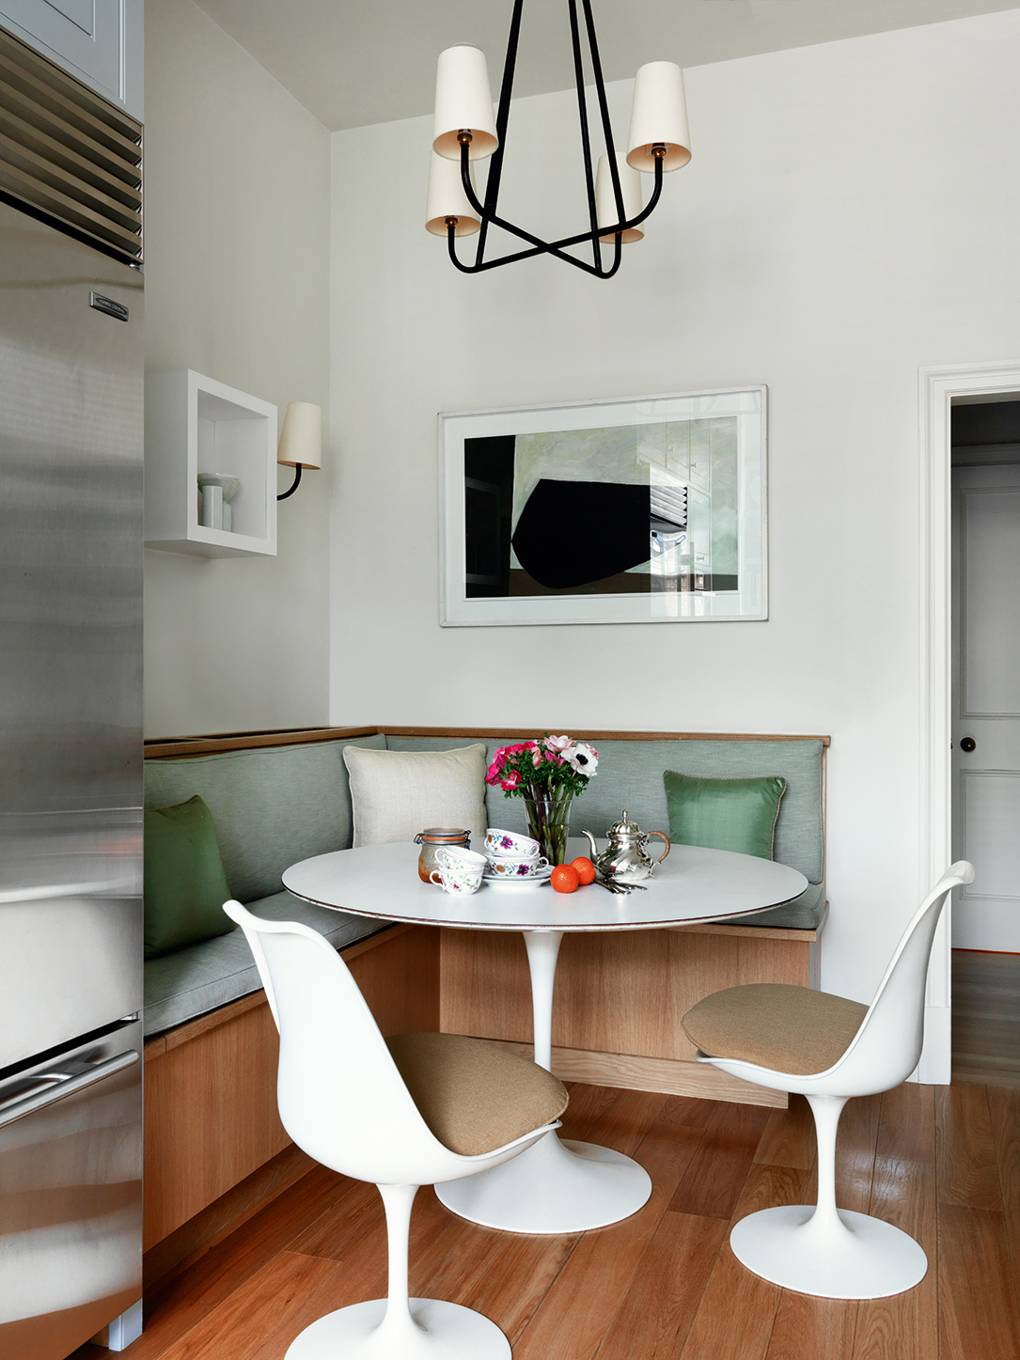 Small Dining Room Ideas Decorating Small Spaces House Garden